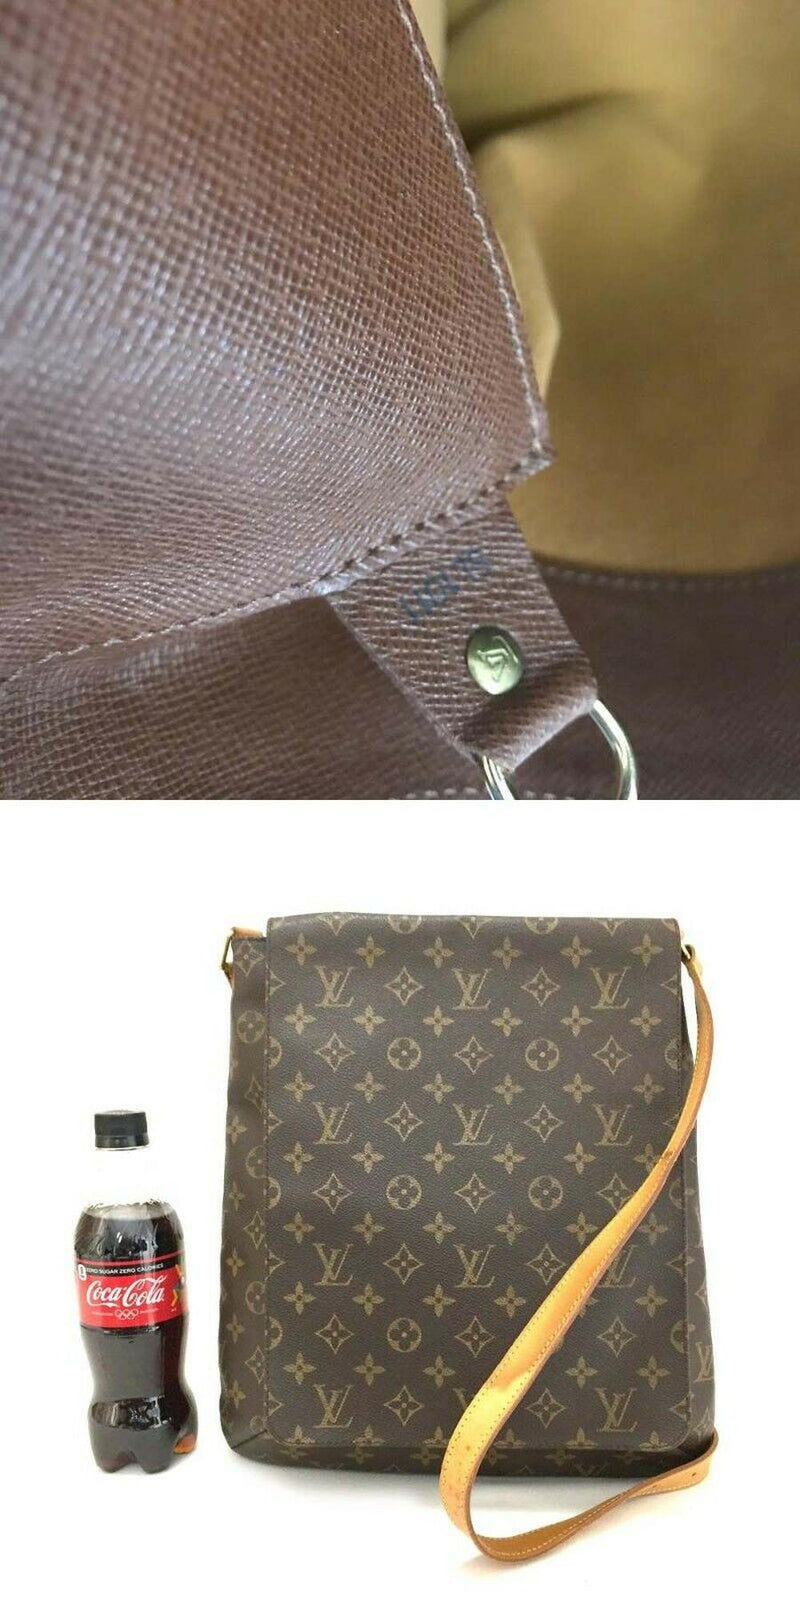 Pre-loved authentic Louis Vuitton Musette Gm Crossbody sale at jebwa